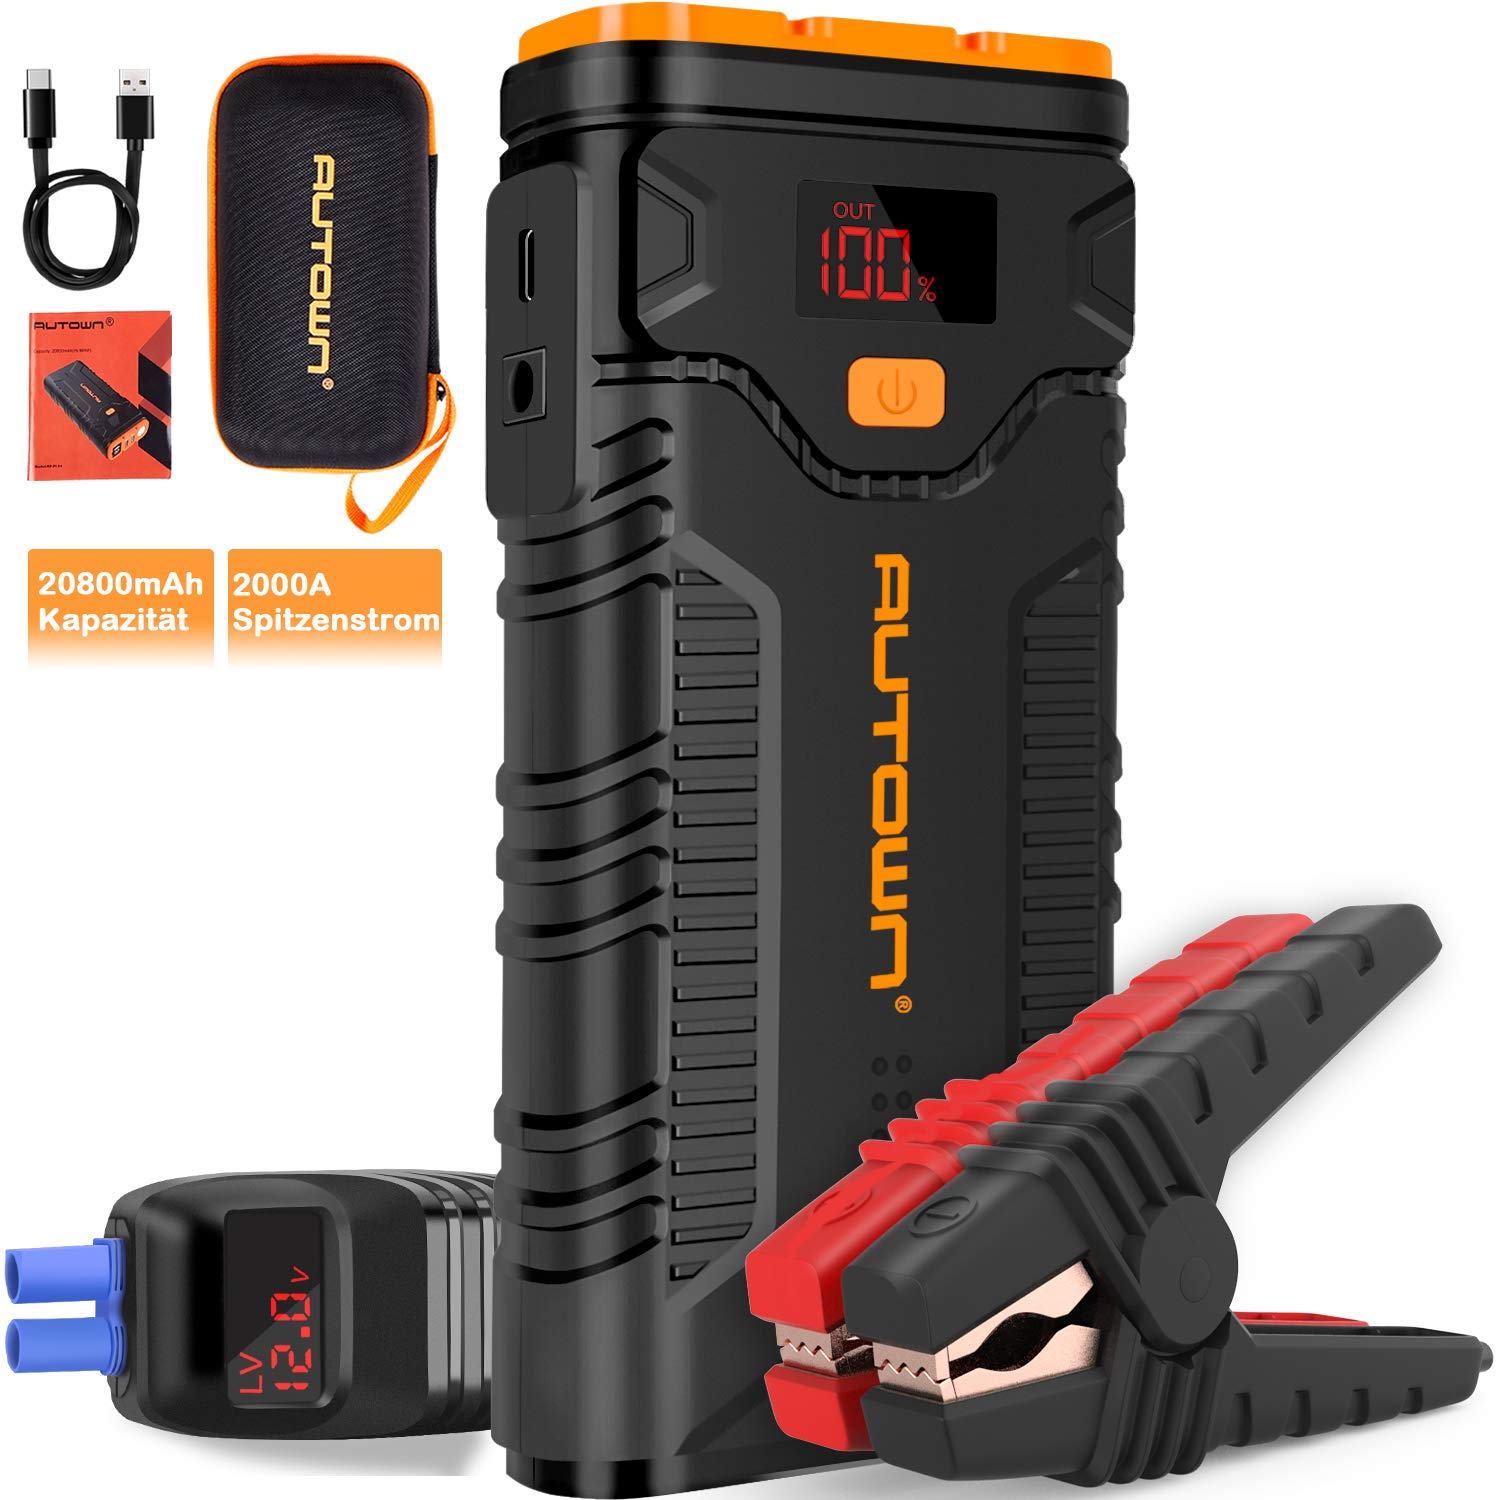 AUTOWN Jump Starter, 2000A Peak 20800mAh Car Jump Starter with Quick Charger, 12V Auto Battery Booster Portable Power Pack with LCD Screen and Type-C Cable